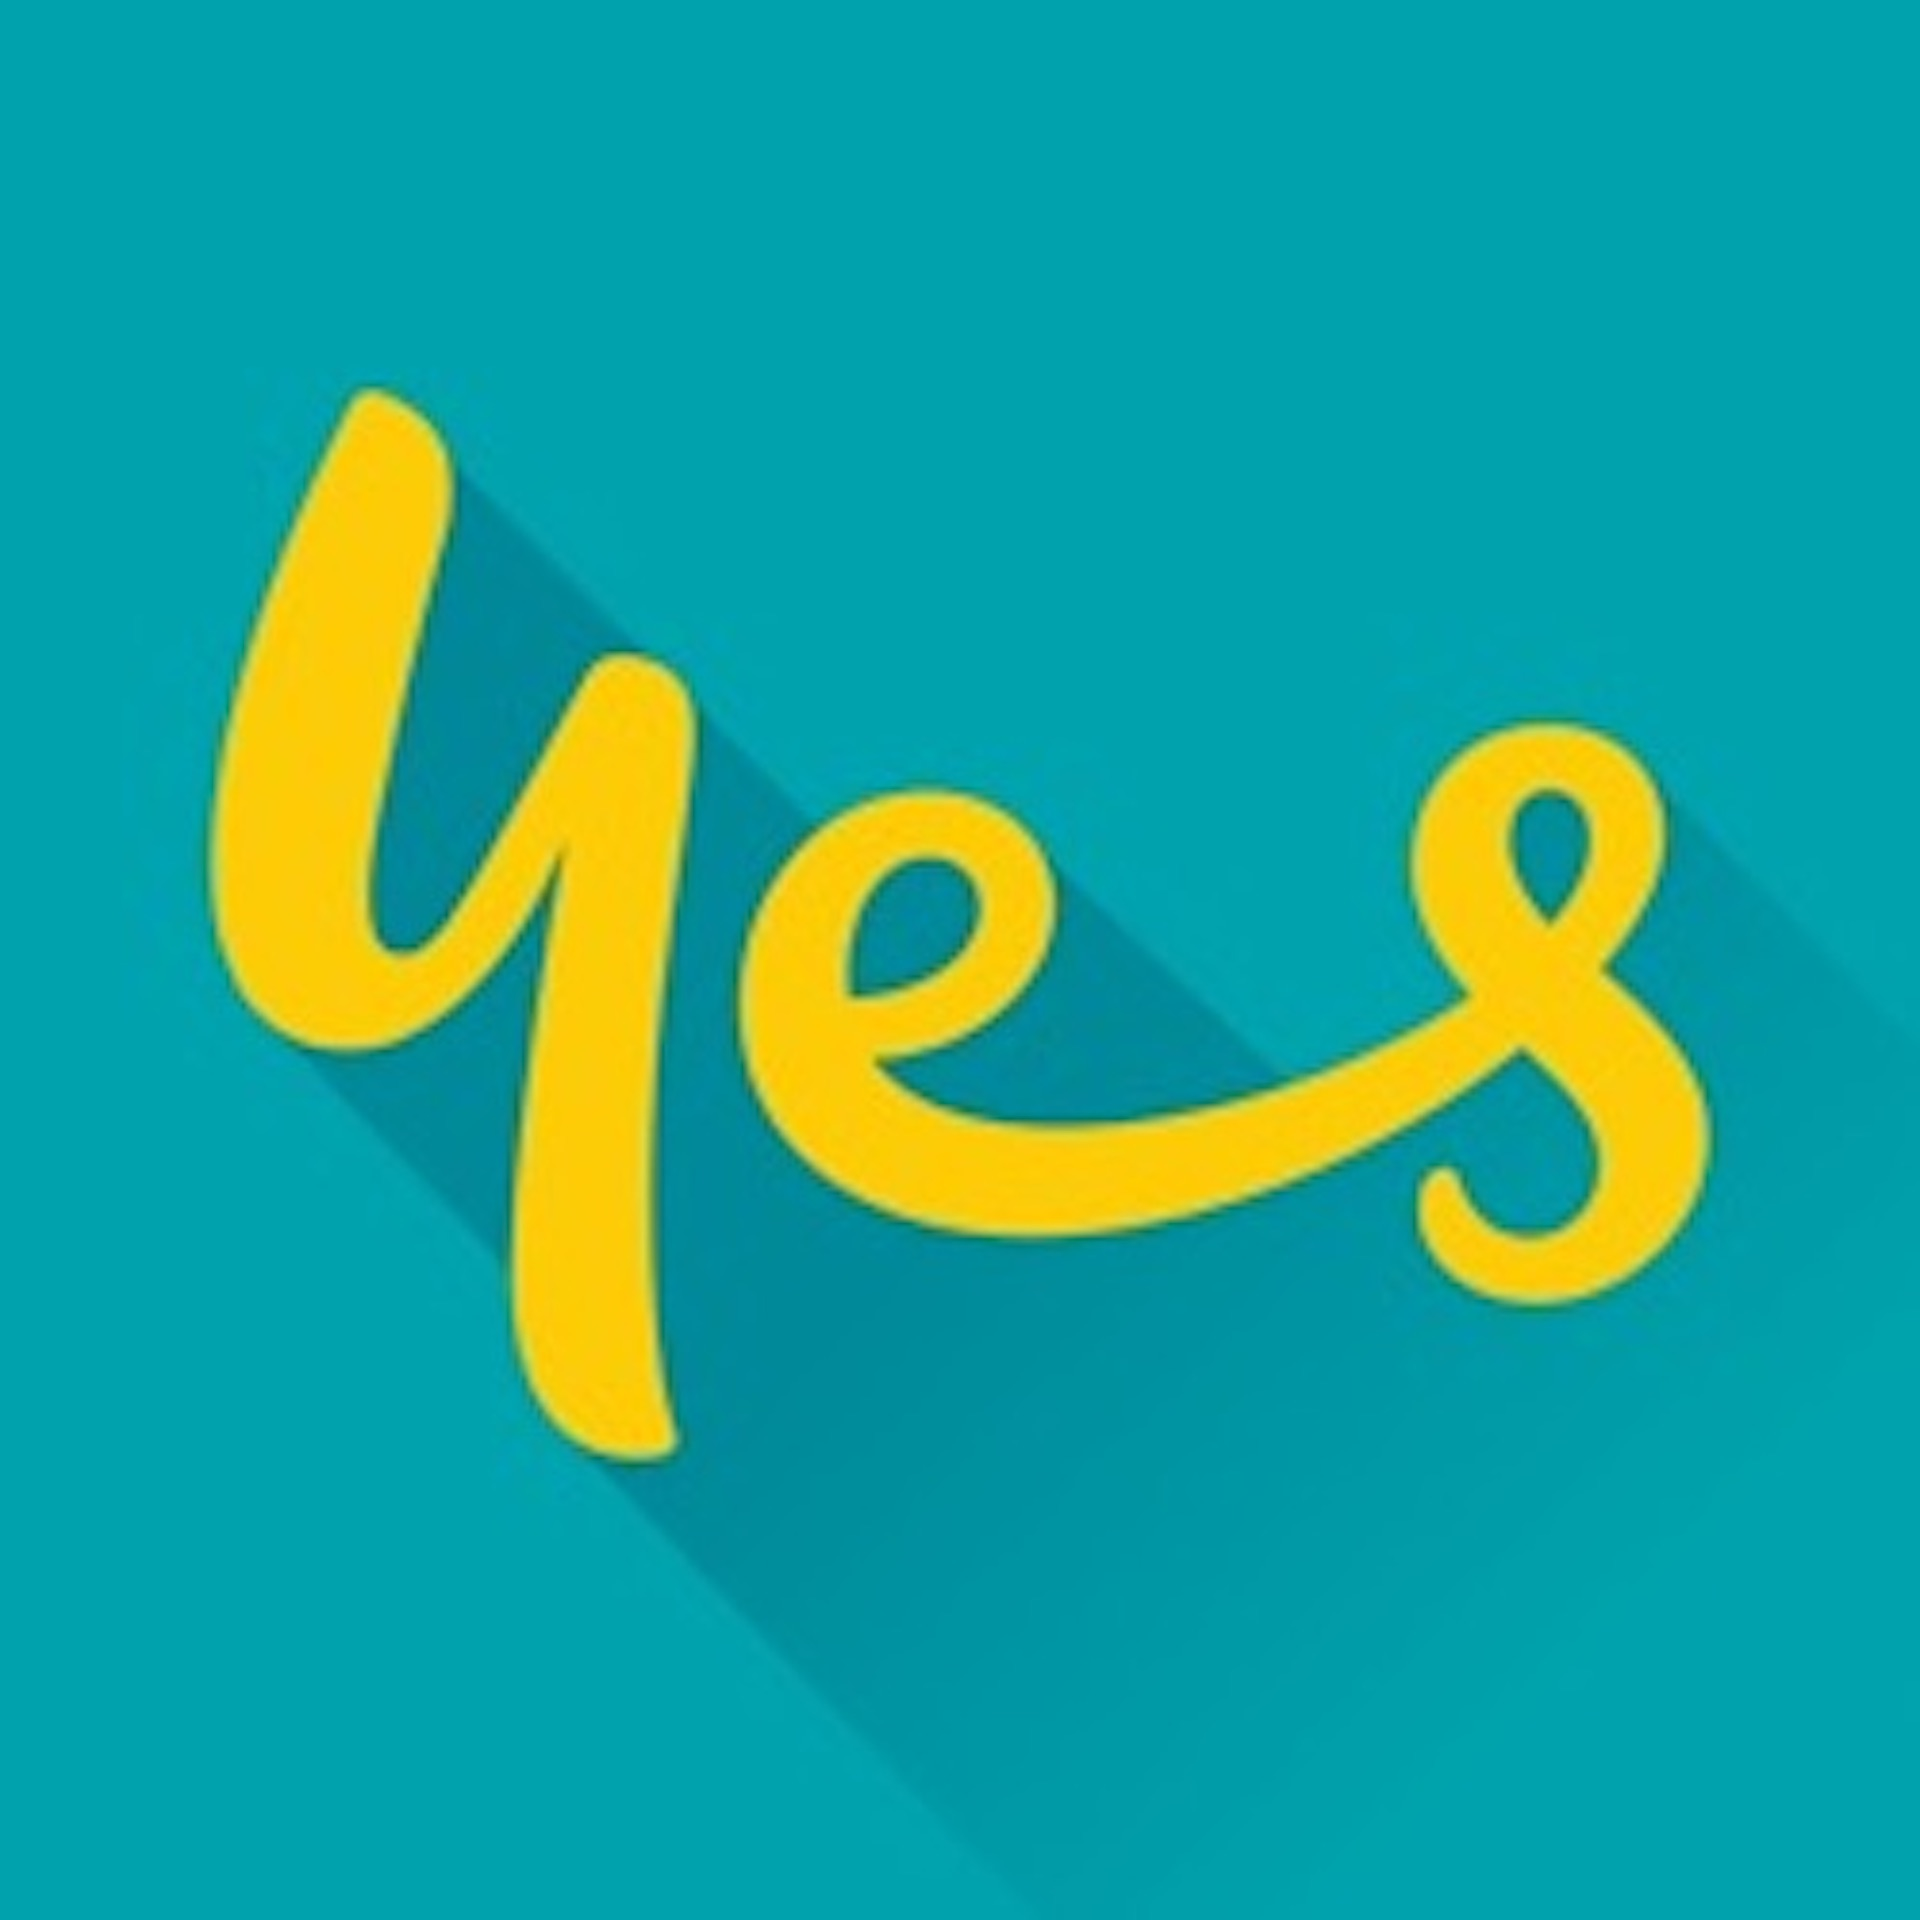 Optus-Give-To-Get-Client.jpg